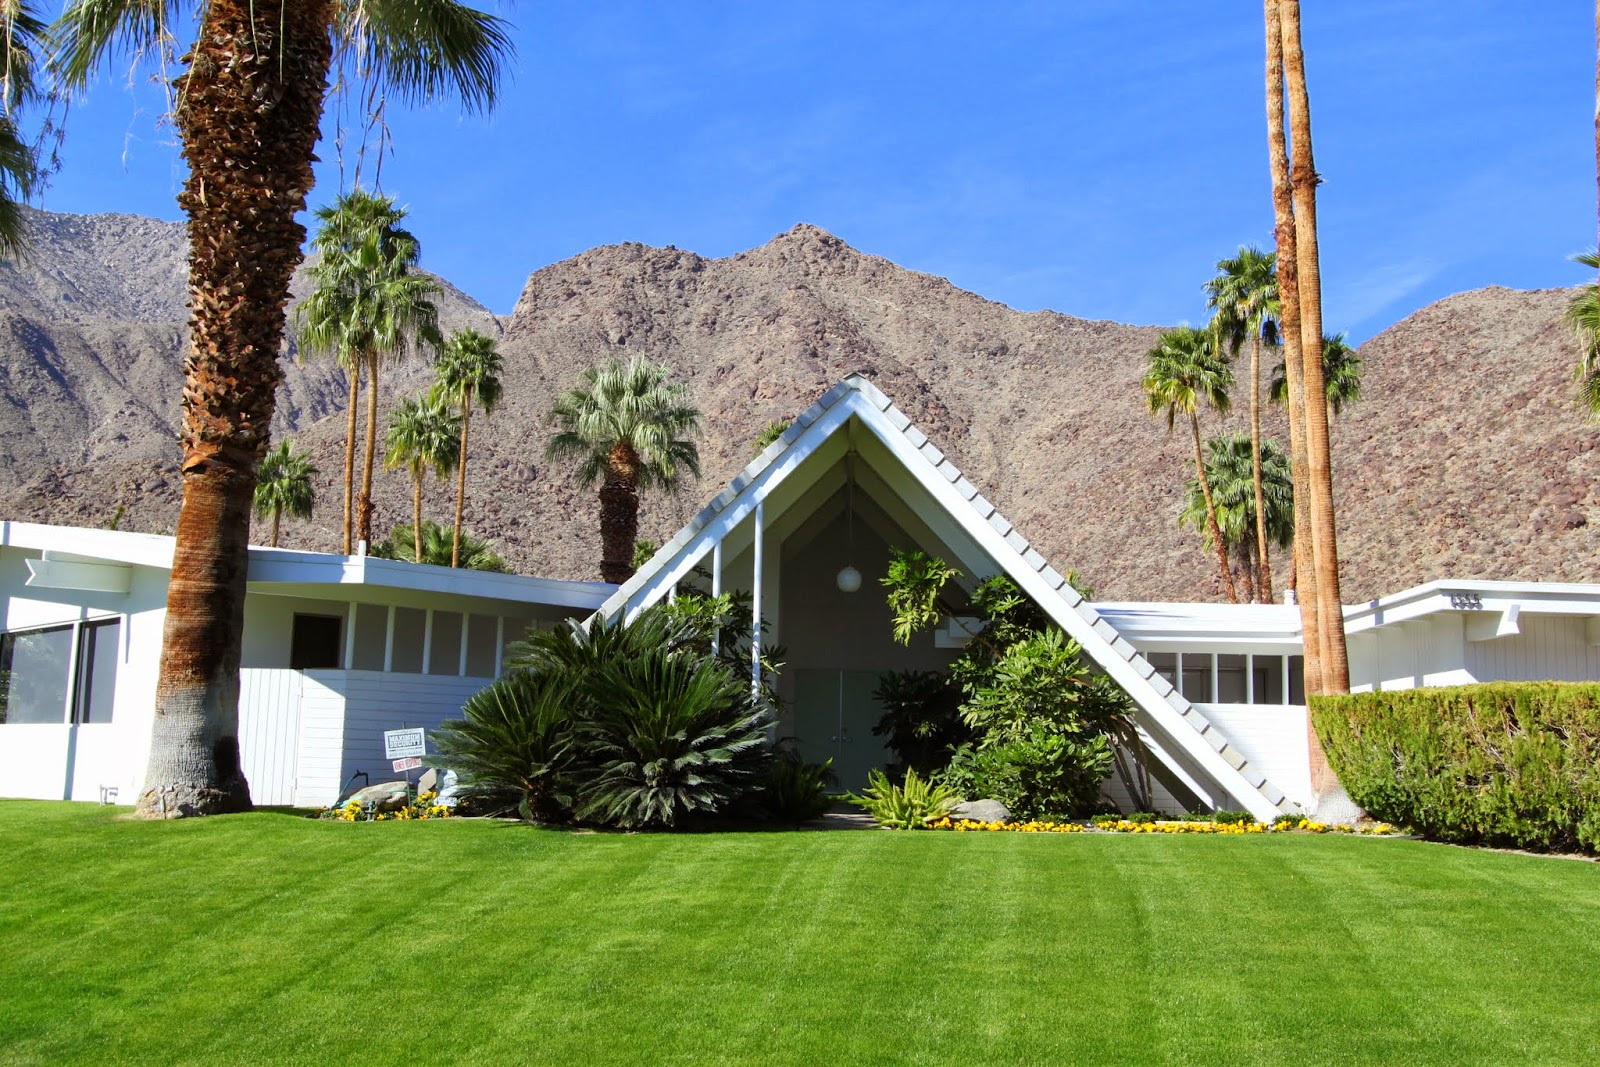 Walking Tour, Vista Las Palmas, Palm Springs, Modernism Week 2014, Swiss Miss